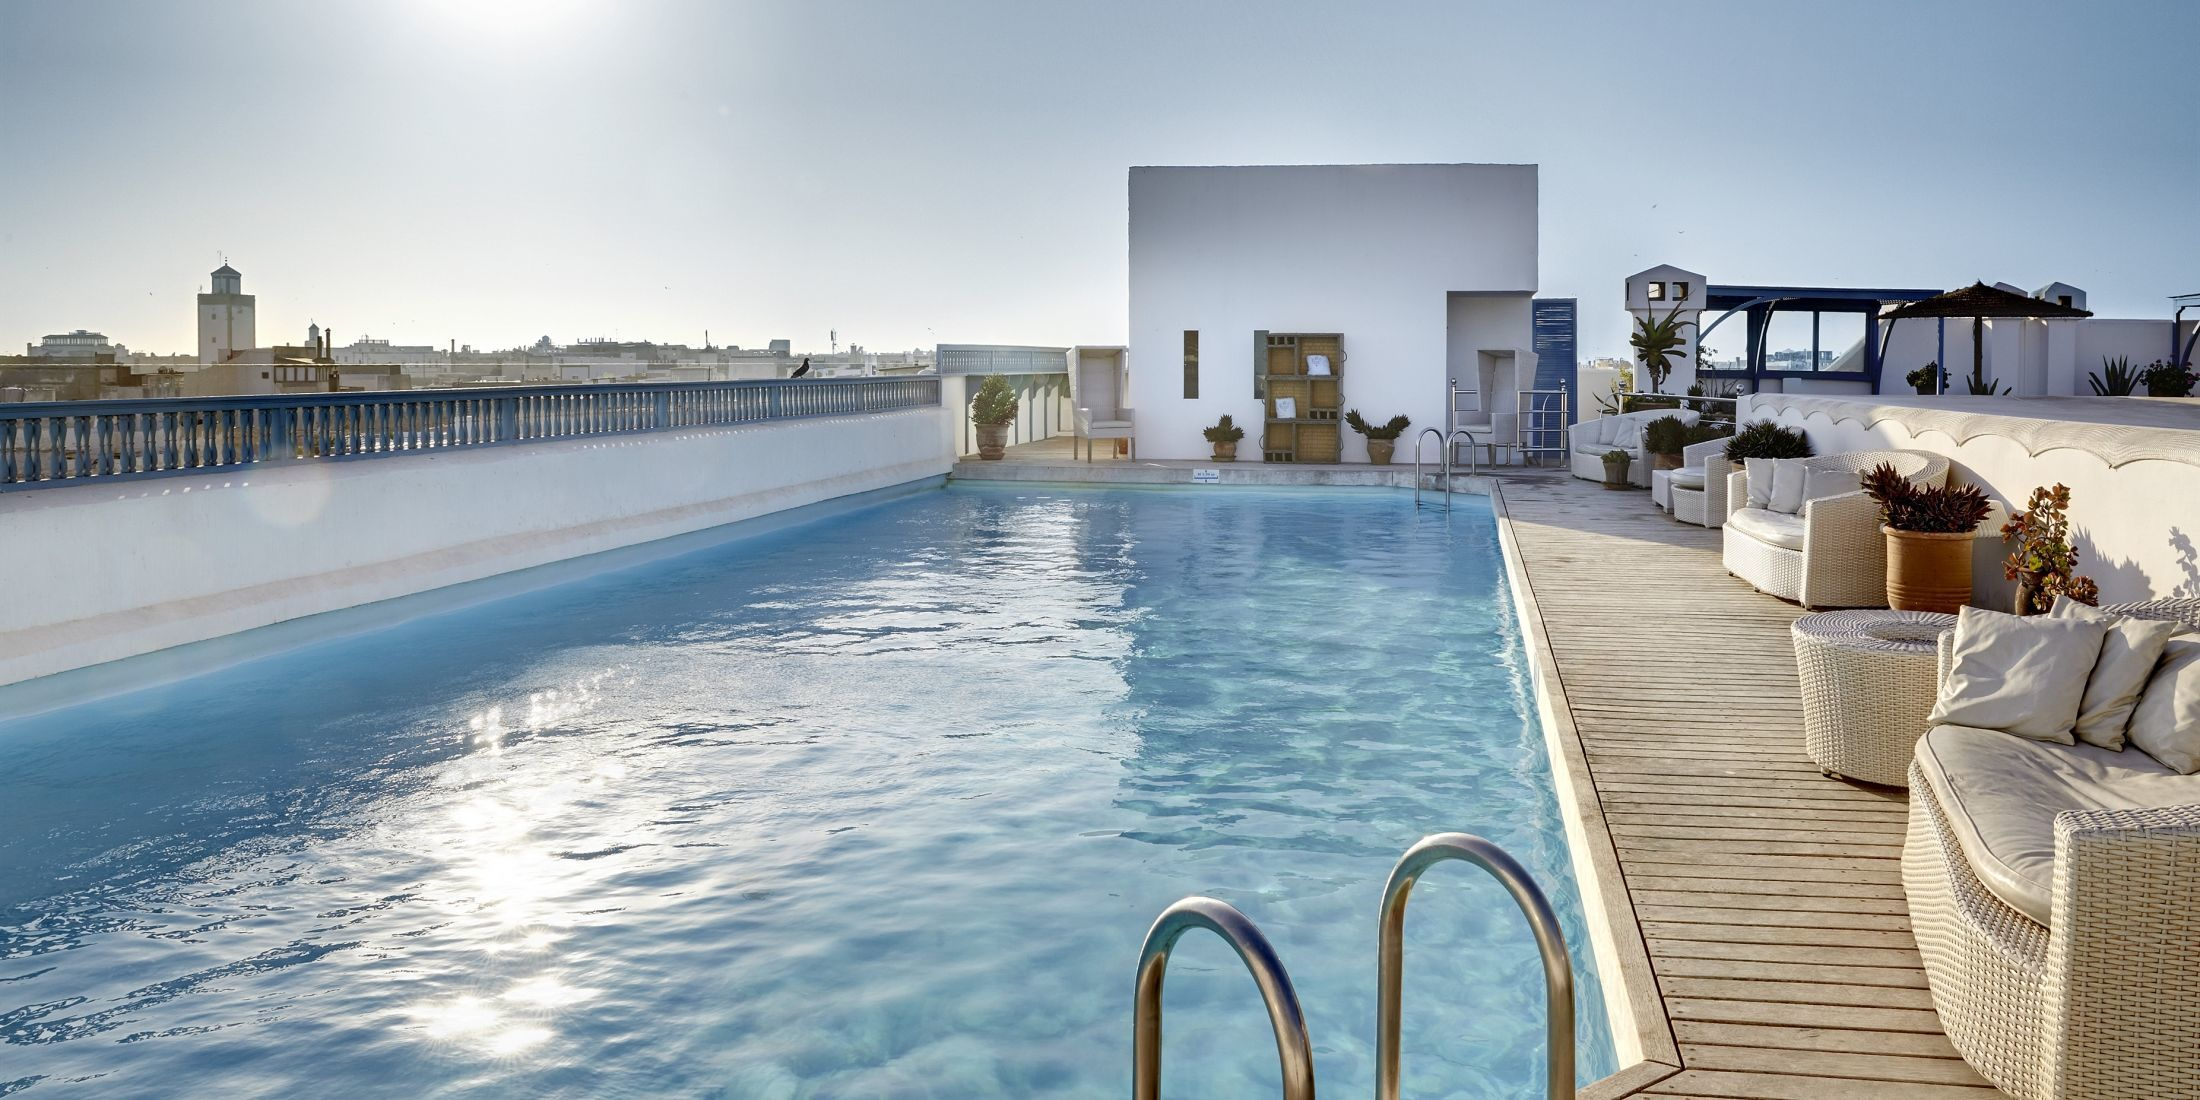 Rooftop pool at Heure Bleue